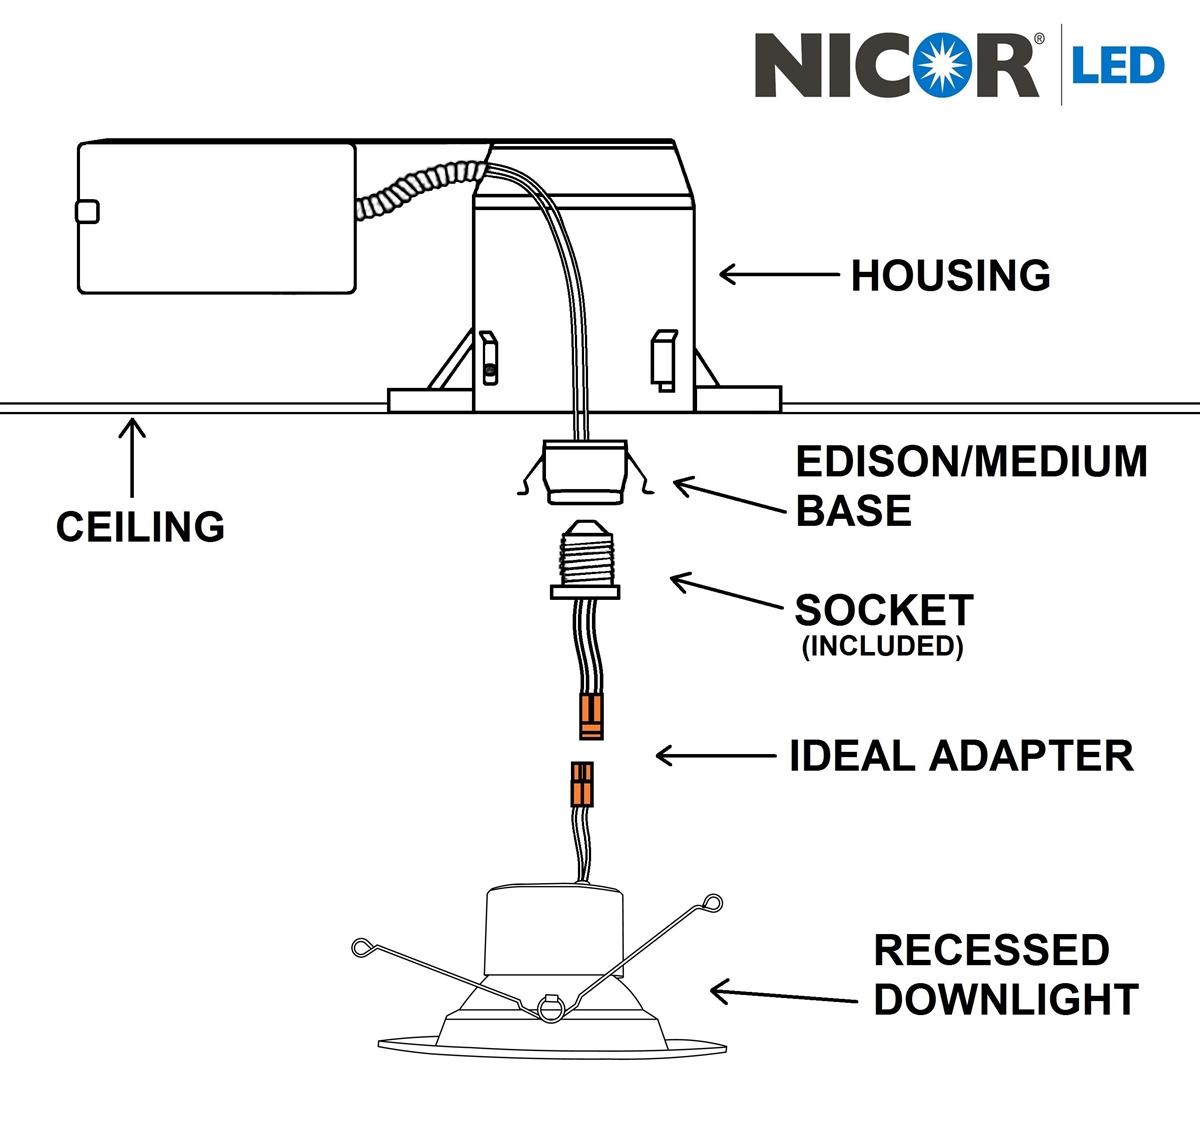 medium resolution of nicor exit sign wiring diagram completed wiring diagramsnicor dcr56 800lm dimmable recessed led downlight elevator wiring